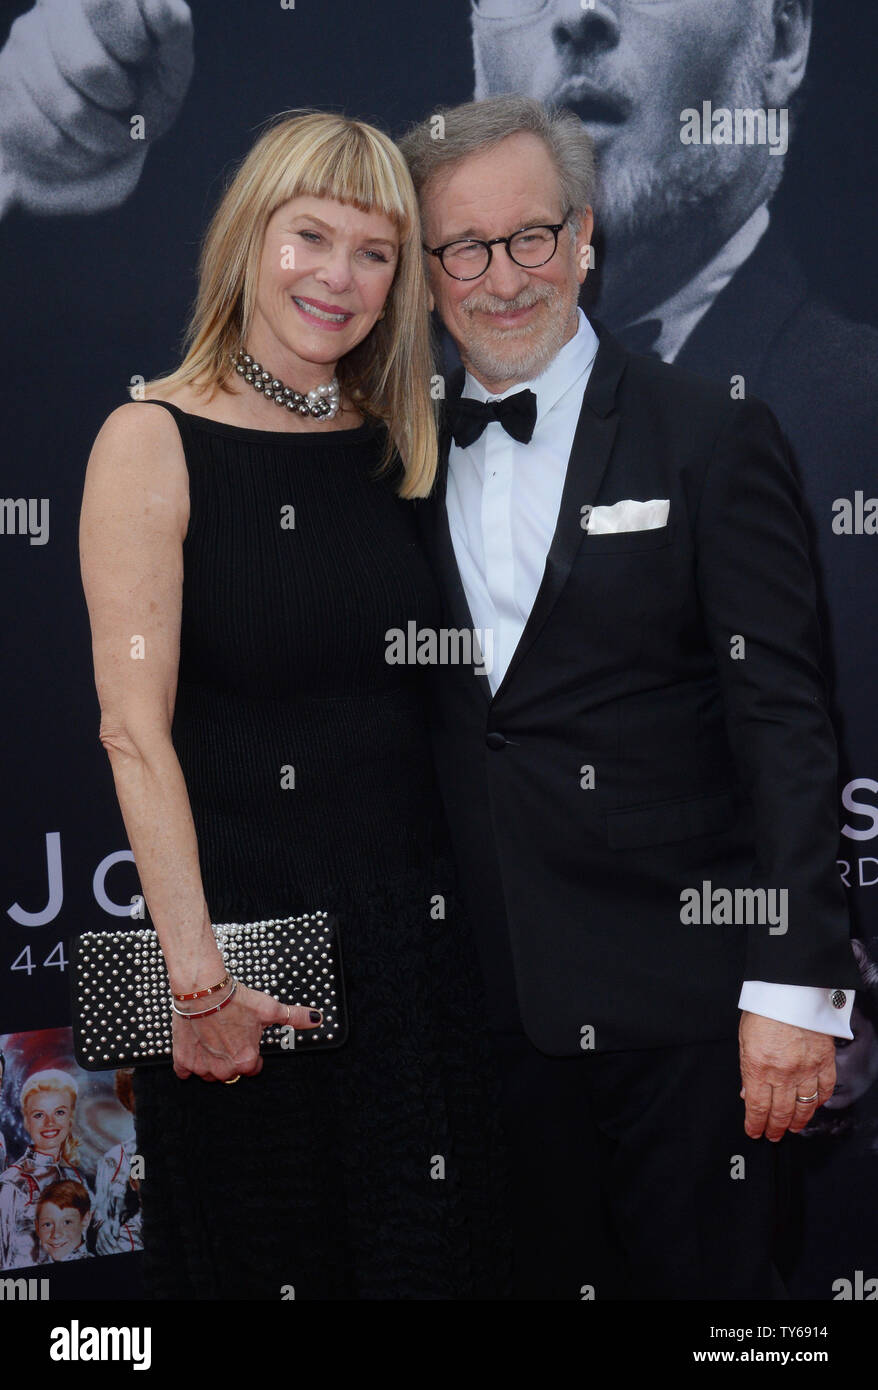 Director Steven Spielberg And His Wife Actress Kate Capshaw Attend American Film Institute S 44th Life Achievement Award Gala Tribute To Composer John Williams At The Dolby Theatre In The Hollywood Section Of